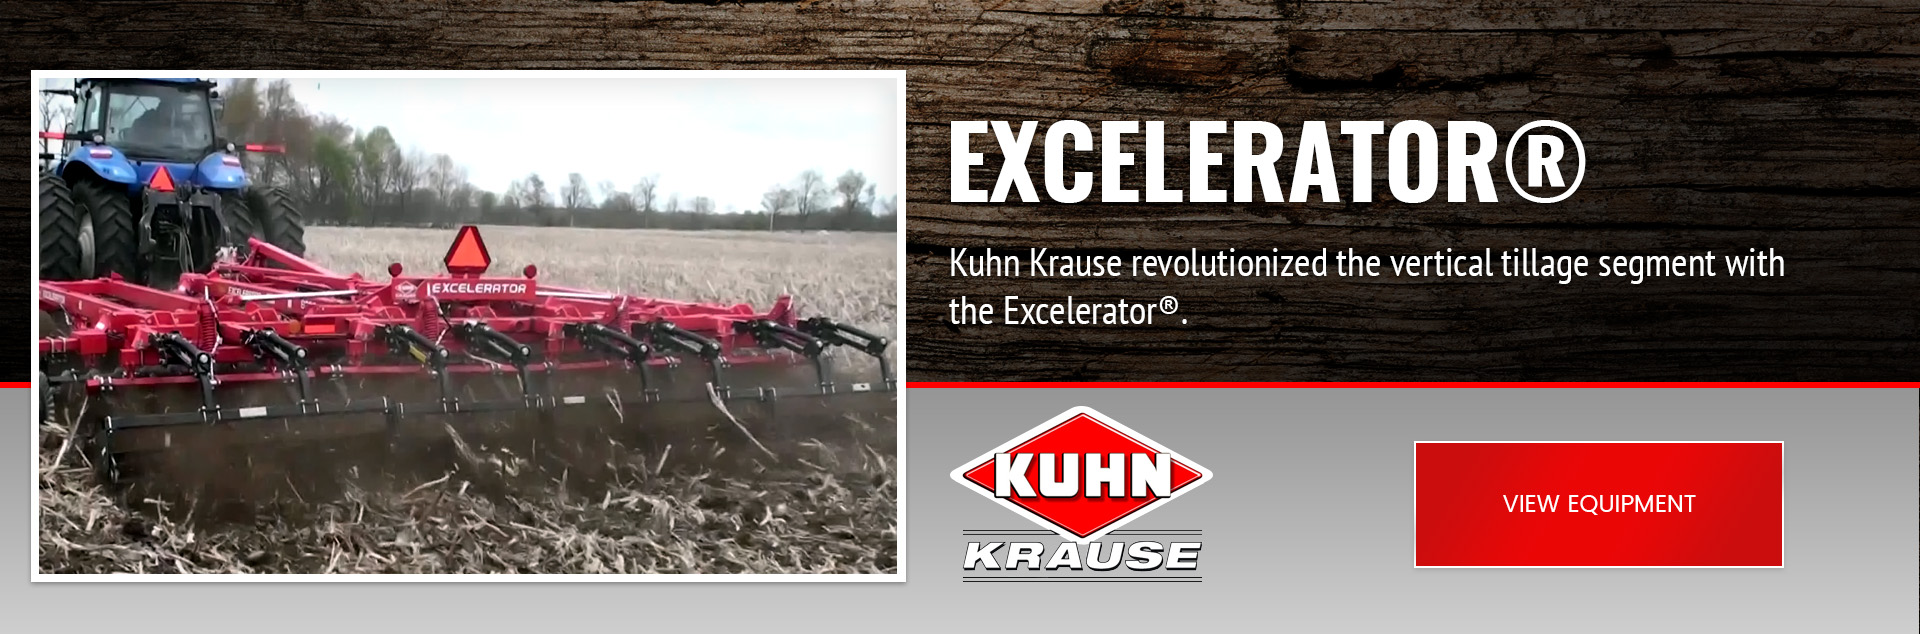 Kuhn Krause revolutionized the vertical tillage segment with the Excelerator®. This product delivers high-speed residue cutting and soil mixing that incorporates many tillage techniques in a single pass.